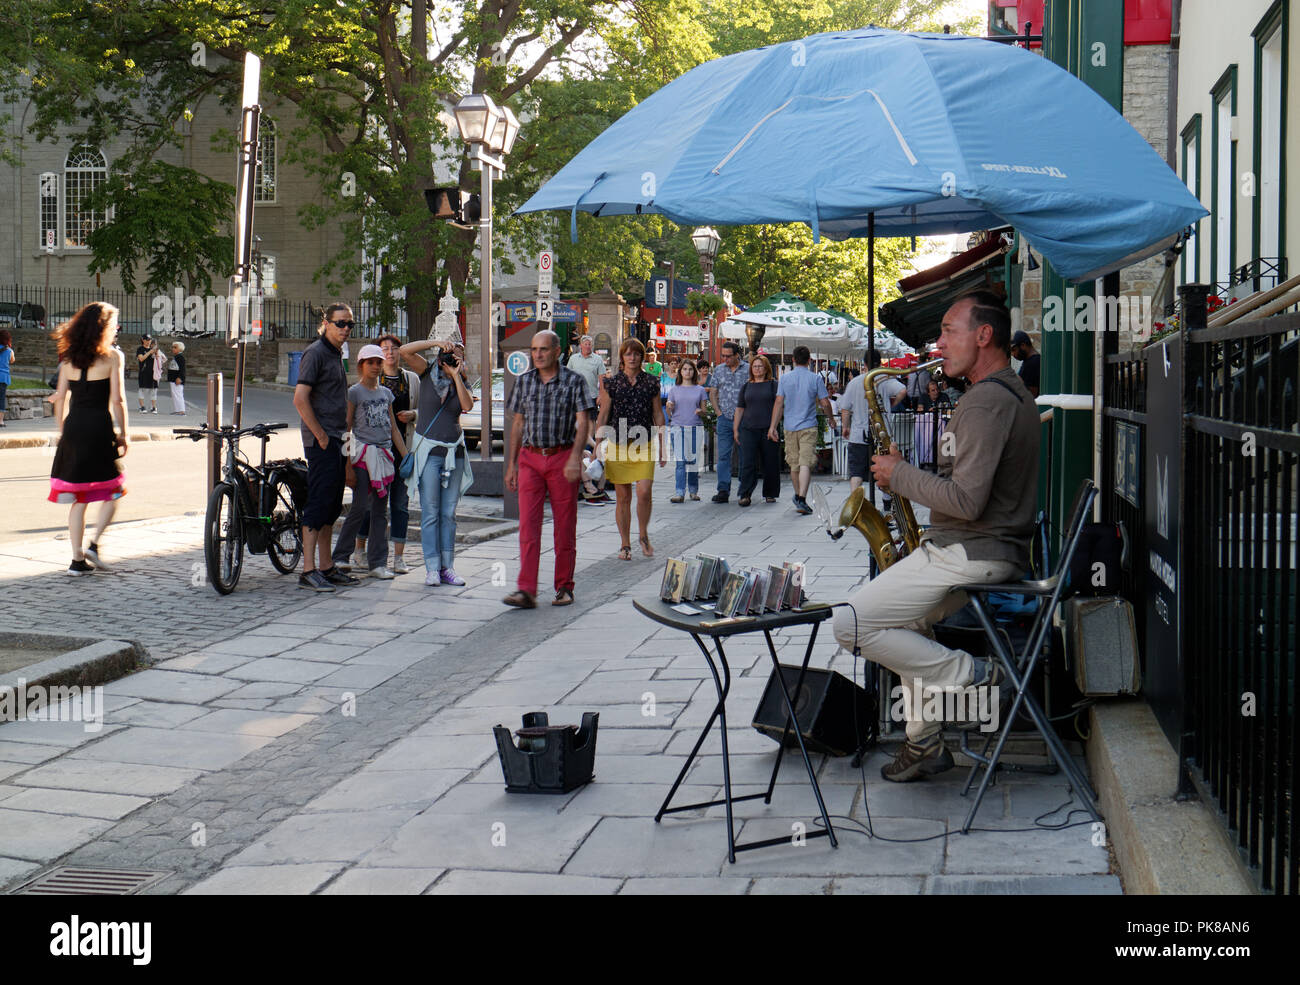 A busker playing a saxophone in the busy tourist area of Vieux Quebec in Rue Ste Anne, Quebec City, Canada - Stock Image